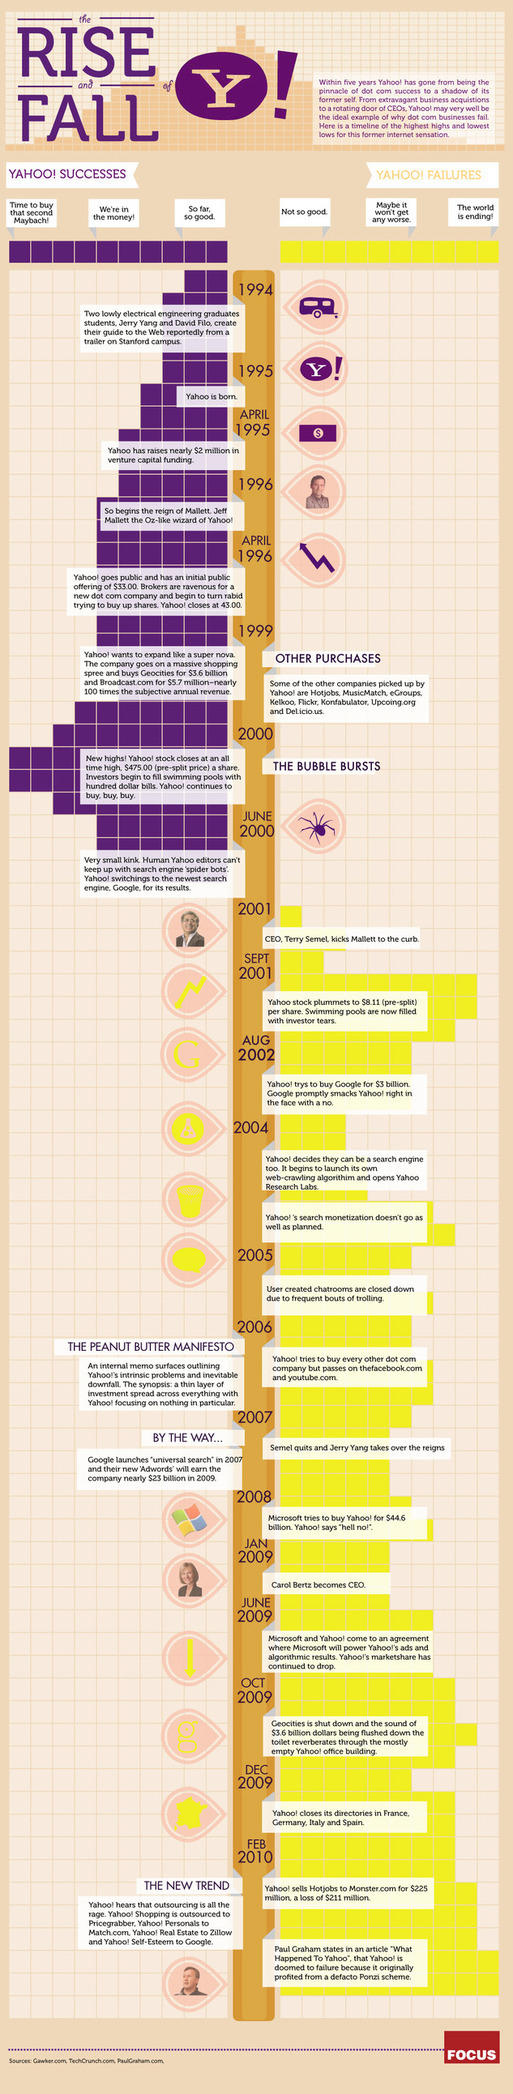 Rise and Fall of Yahoo Infographic